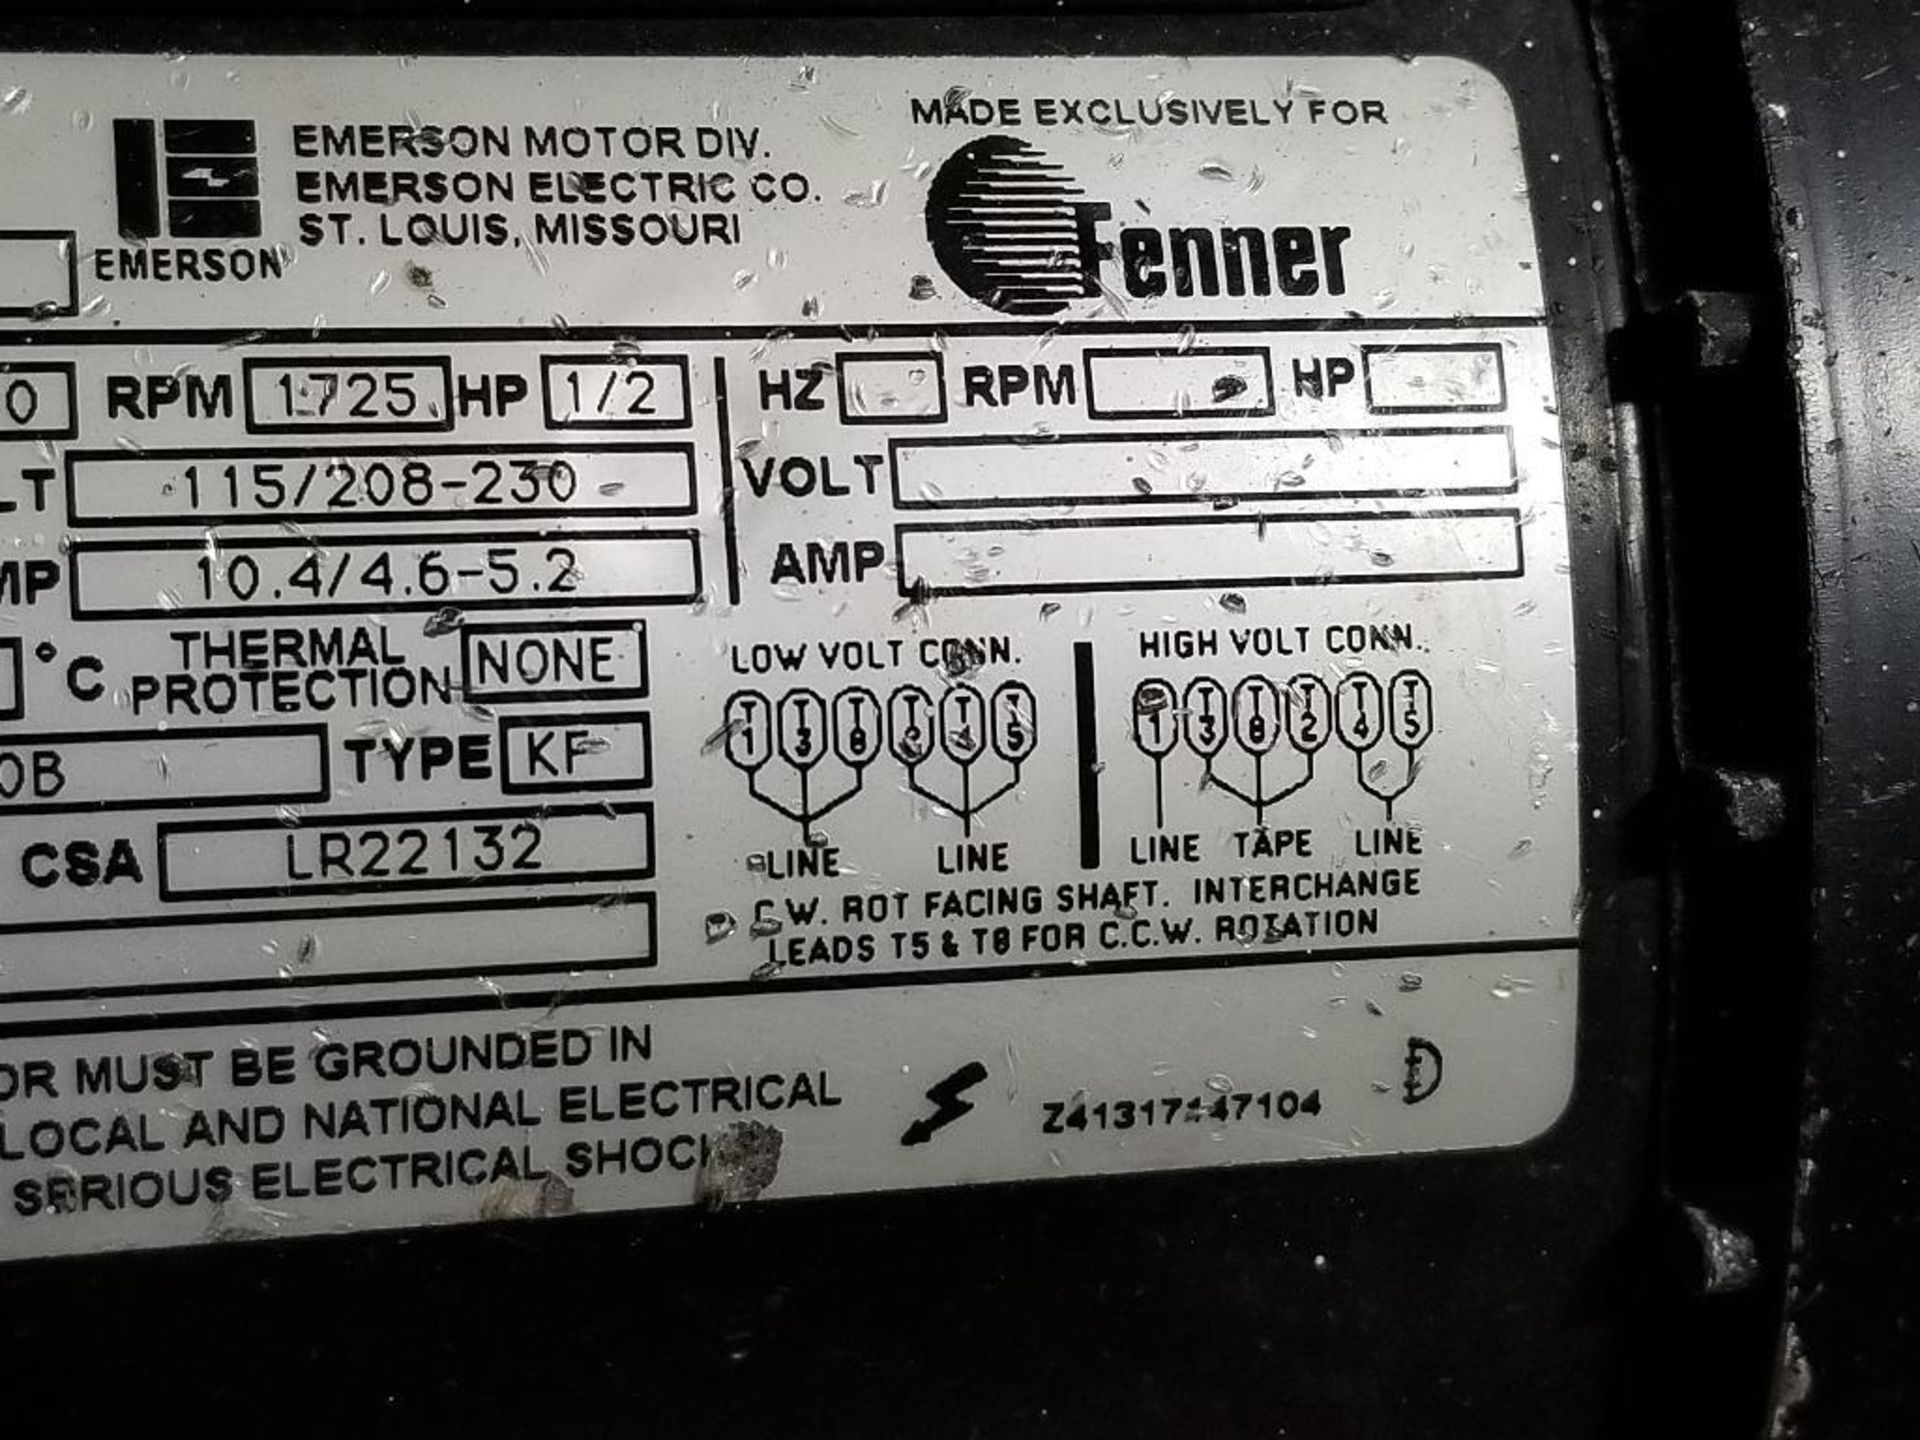 1/2HP Fenner Emerson 2975-BC pump motor. 1PH, 115/208-230V, 1725RPM. XE56CZ-Frame. - Image 4 of 5